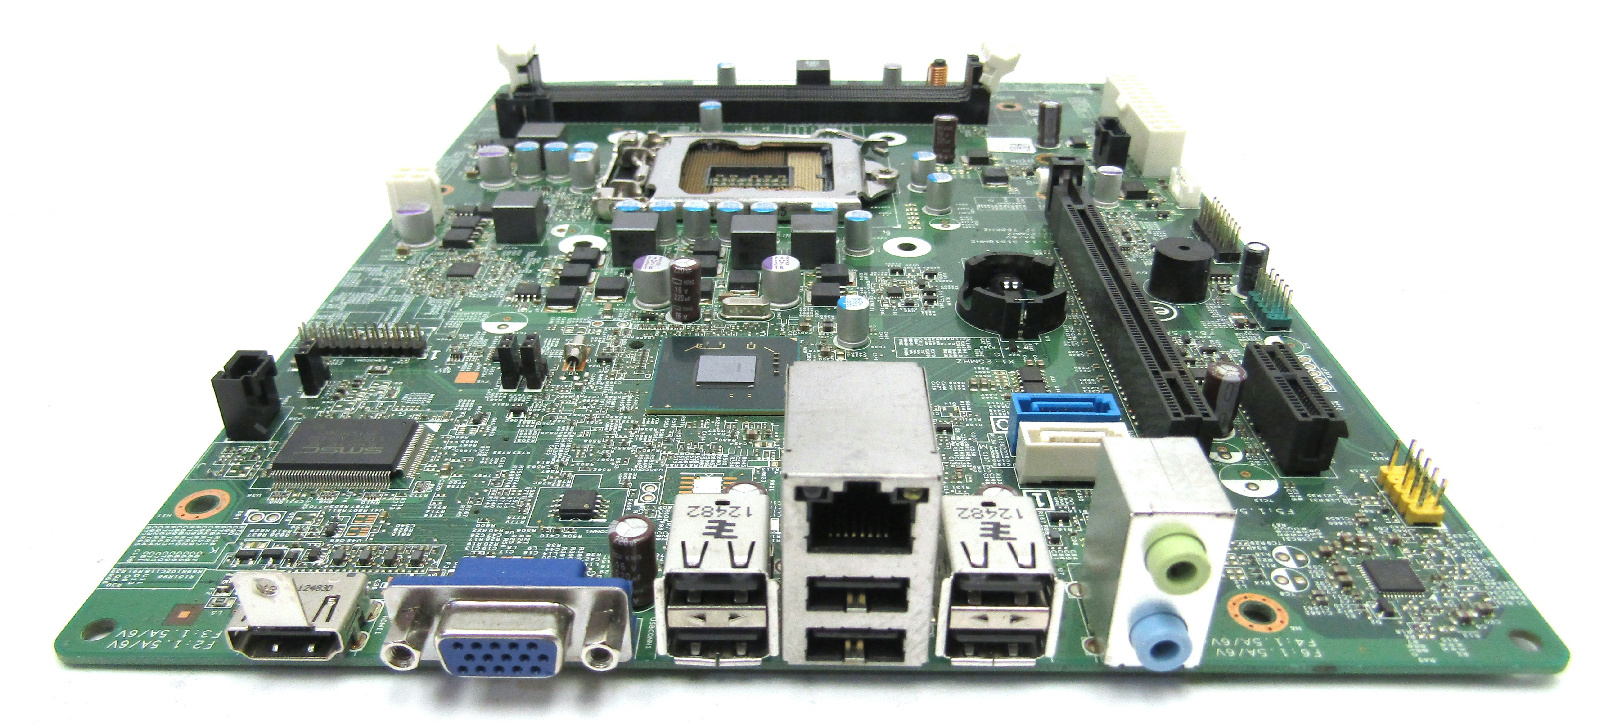 Dell Optiplex 3010 Motherboard Layout Related Keywords & Suggestions